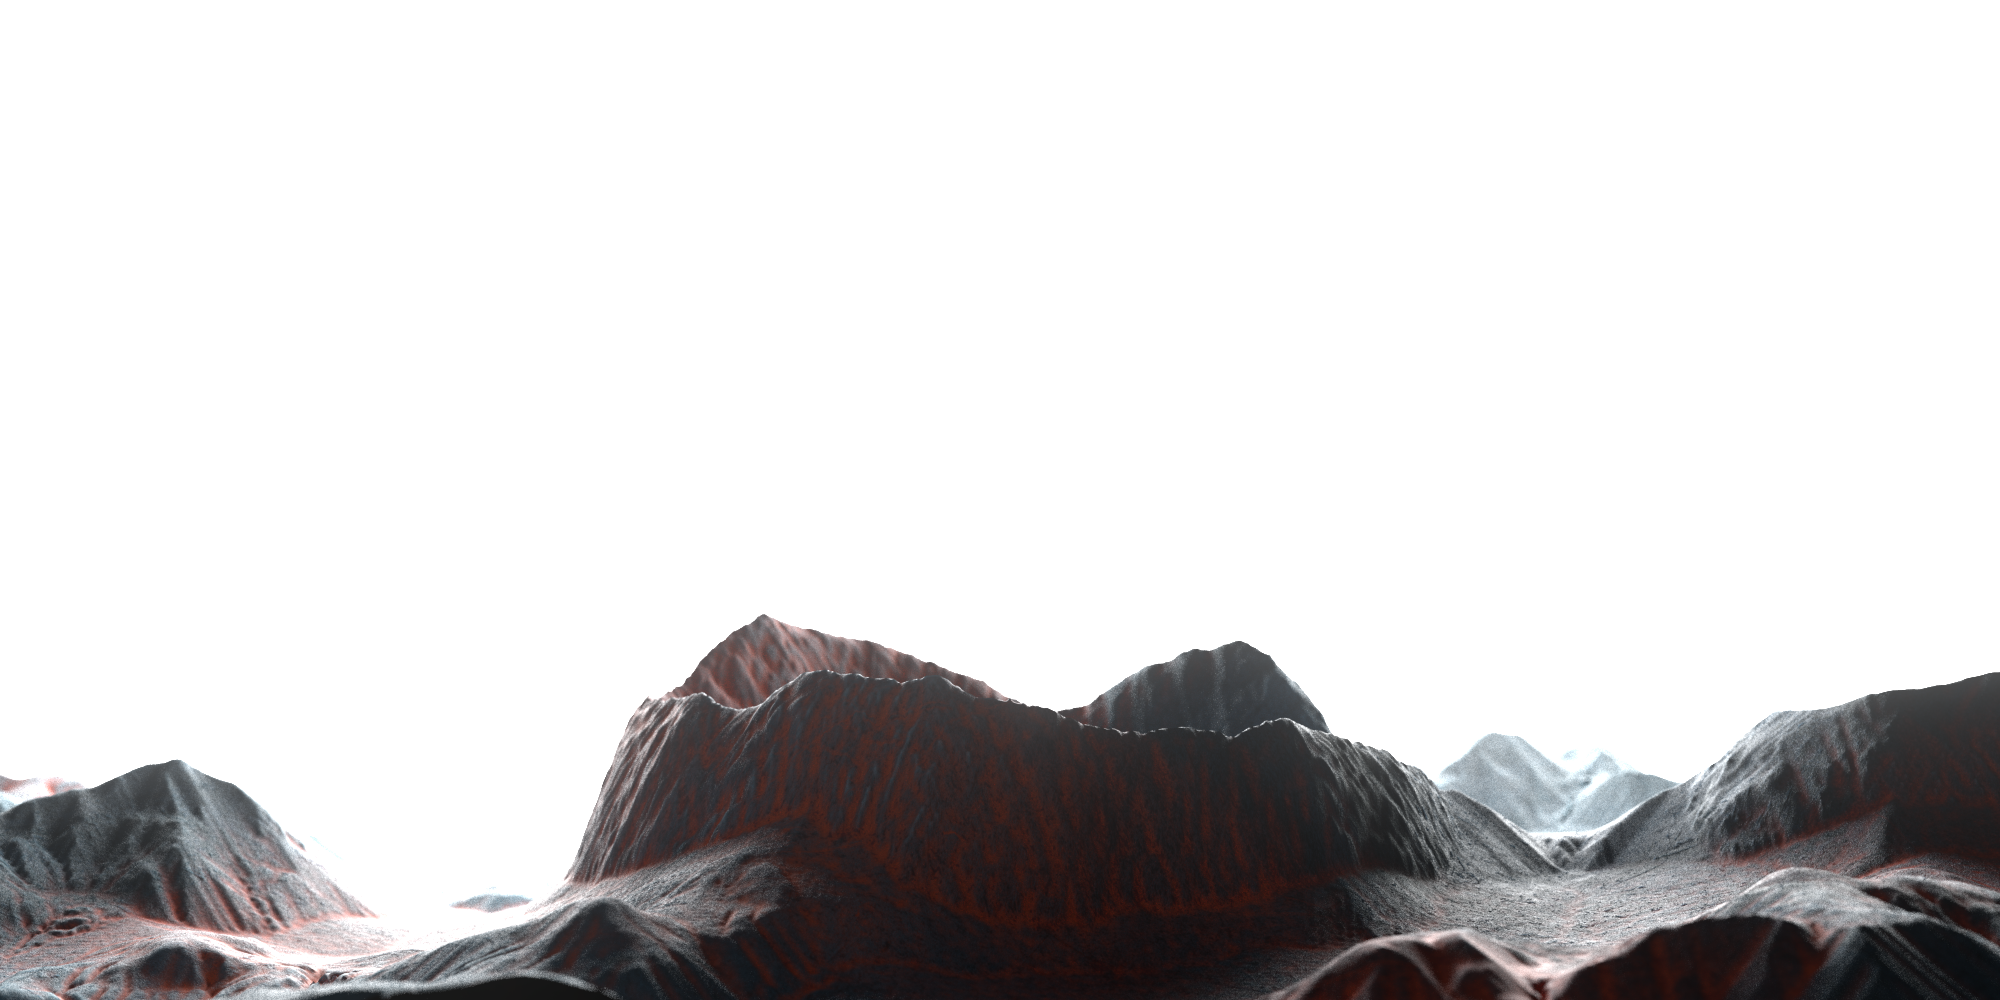 Crater_Render_004.png